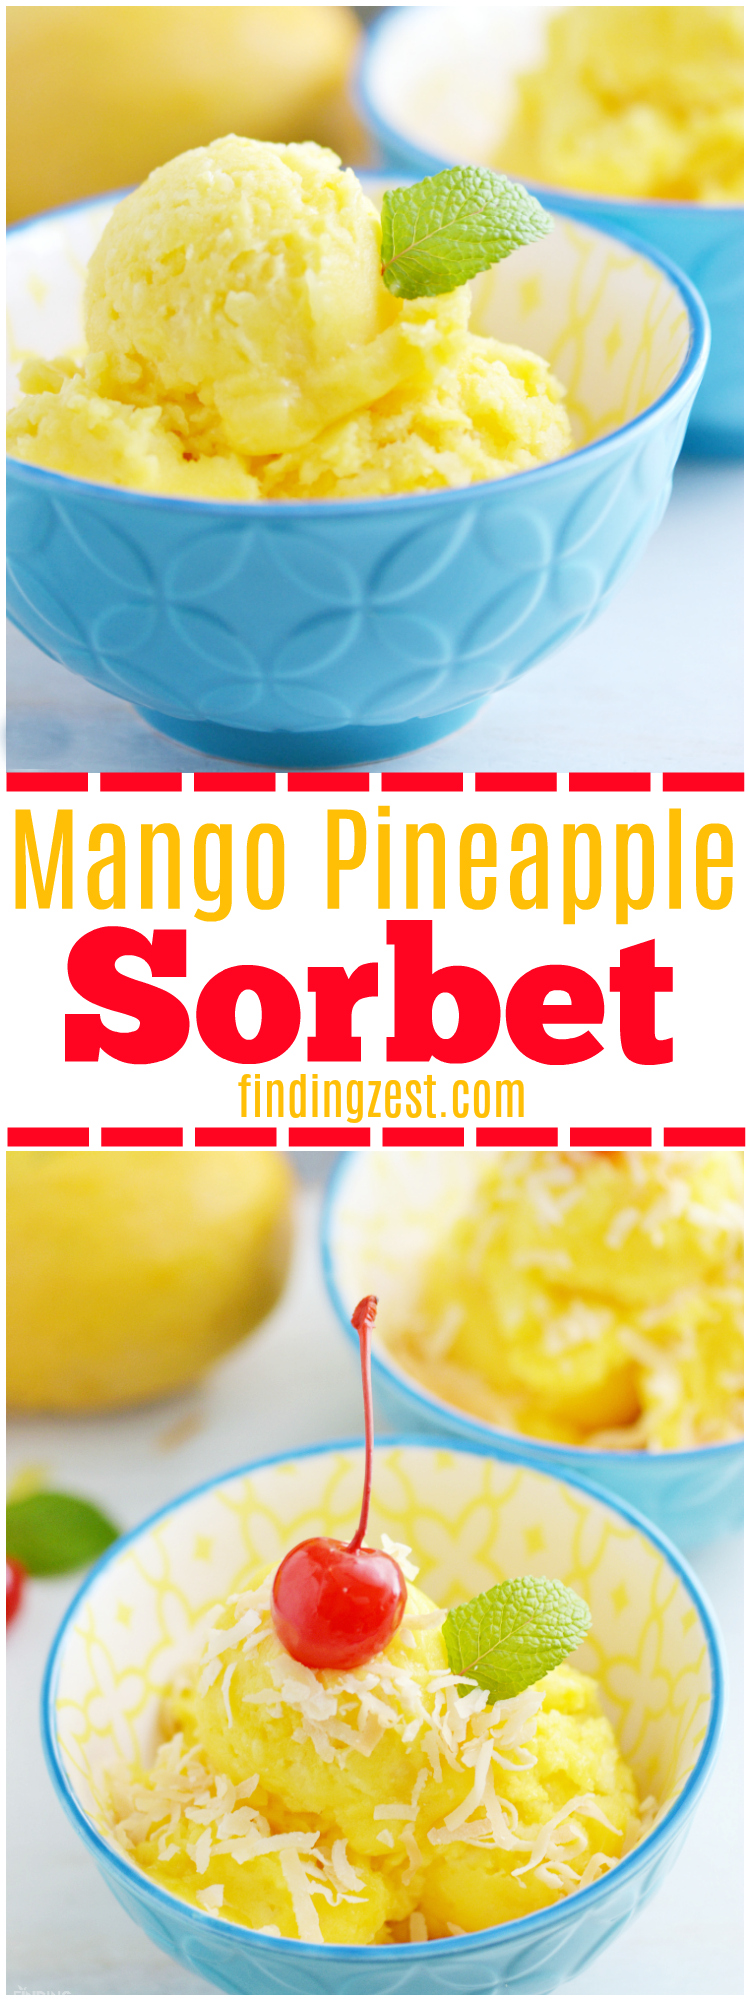 Only three ingredients and a blender are needed to make this homemade Mango Pineapple Sorbet! Add toasted coconut and a cherry for a tropical dessert! Kids will love this healthier alternative to ice cream.